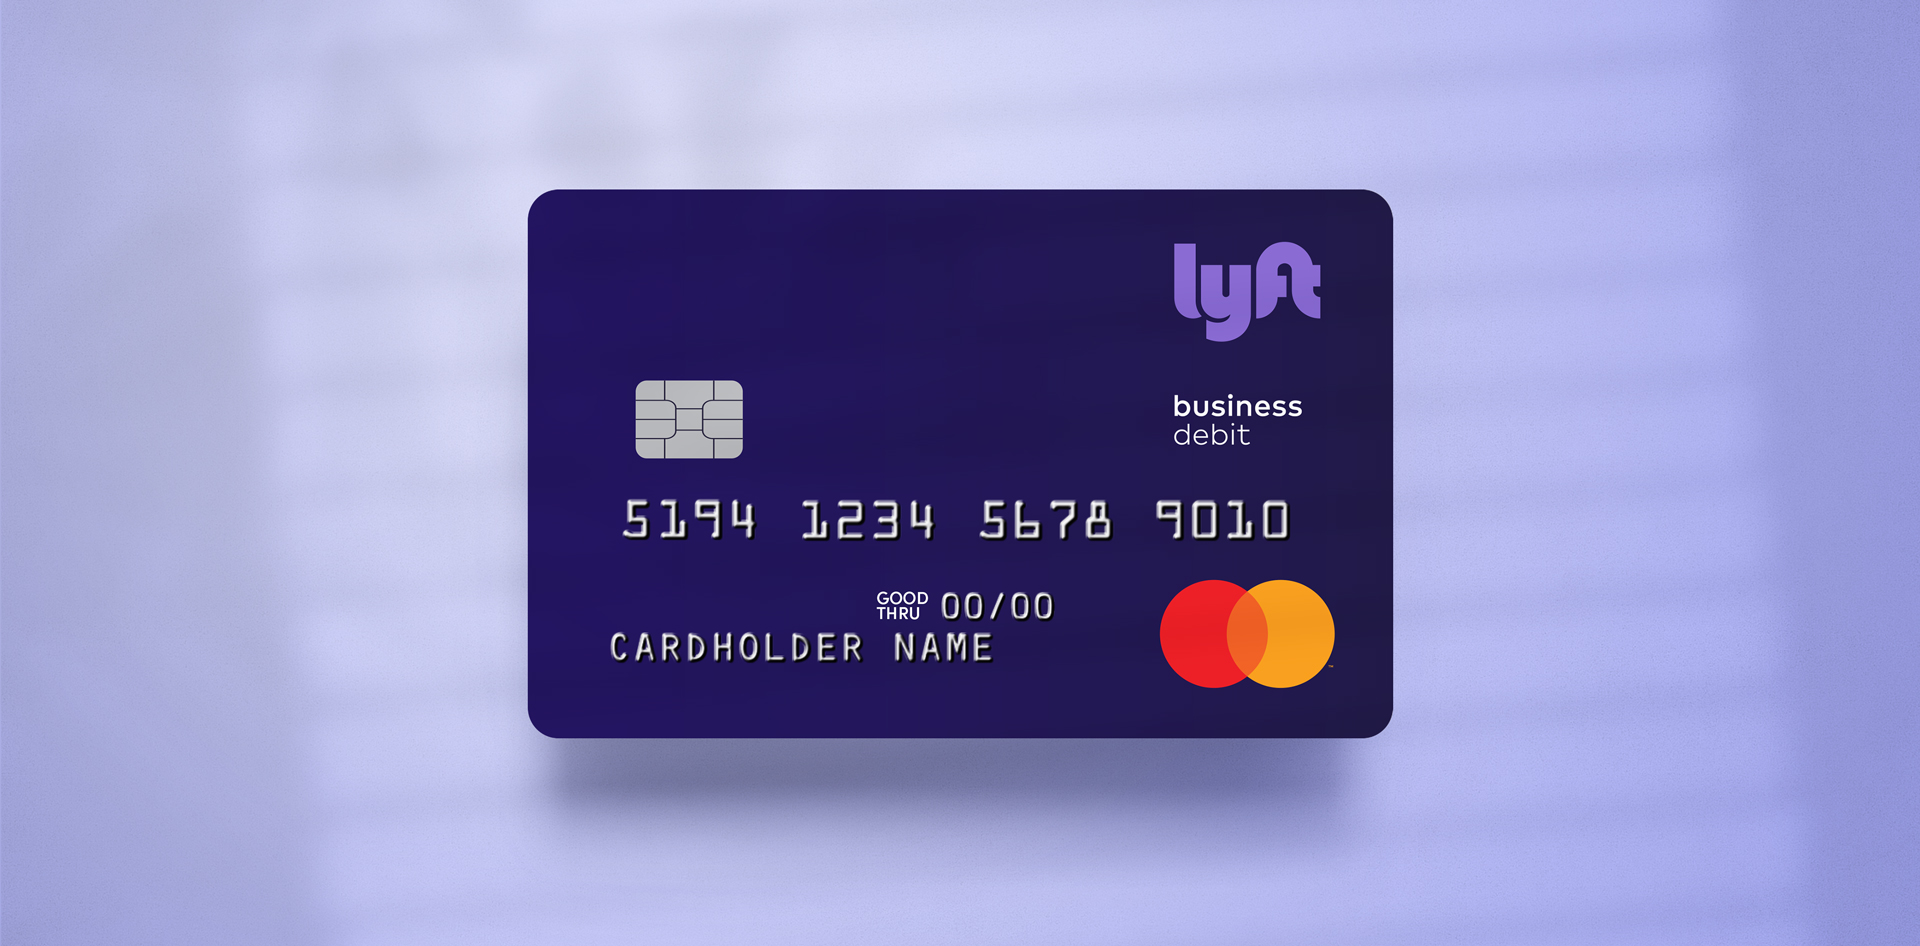 lyft-debit-header-v2r2